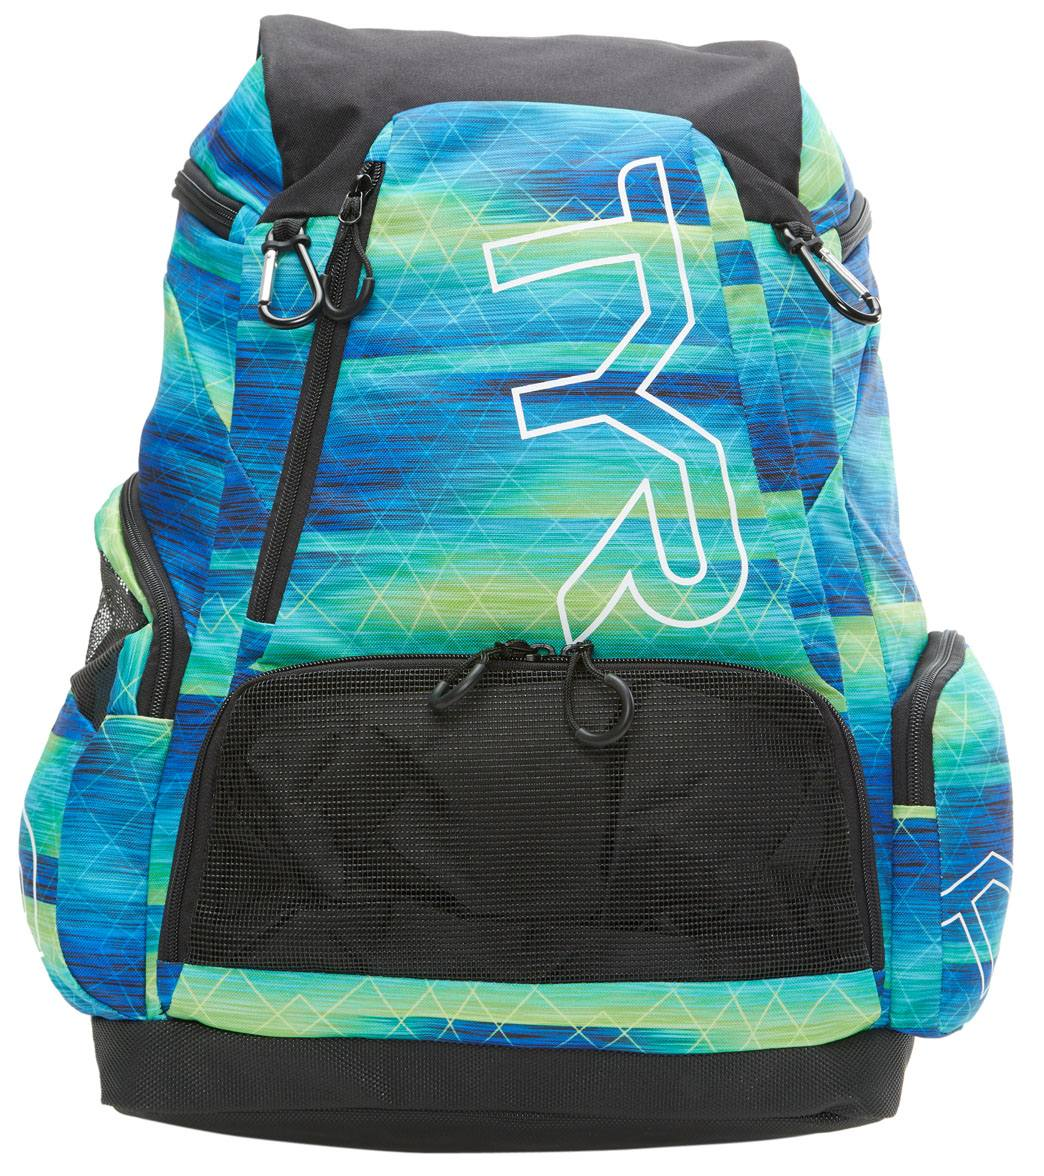 01478c1b3aa9 TYR Alliance 45L Kinematic Backpack at SwimOutlet.com - Free ...